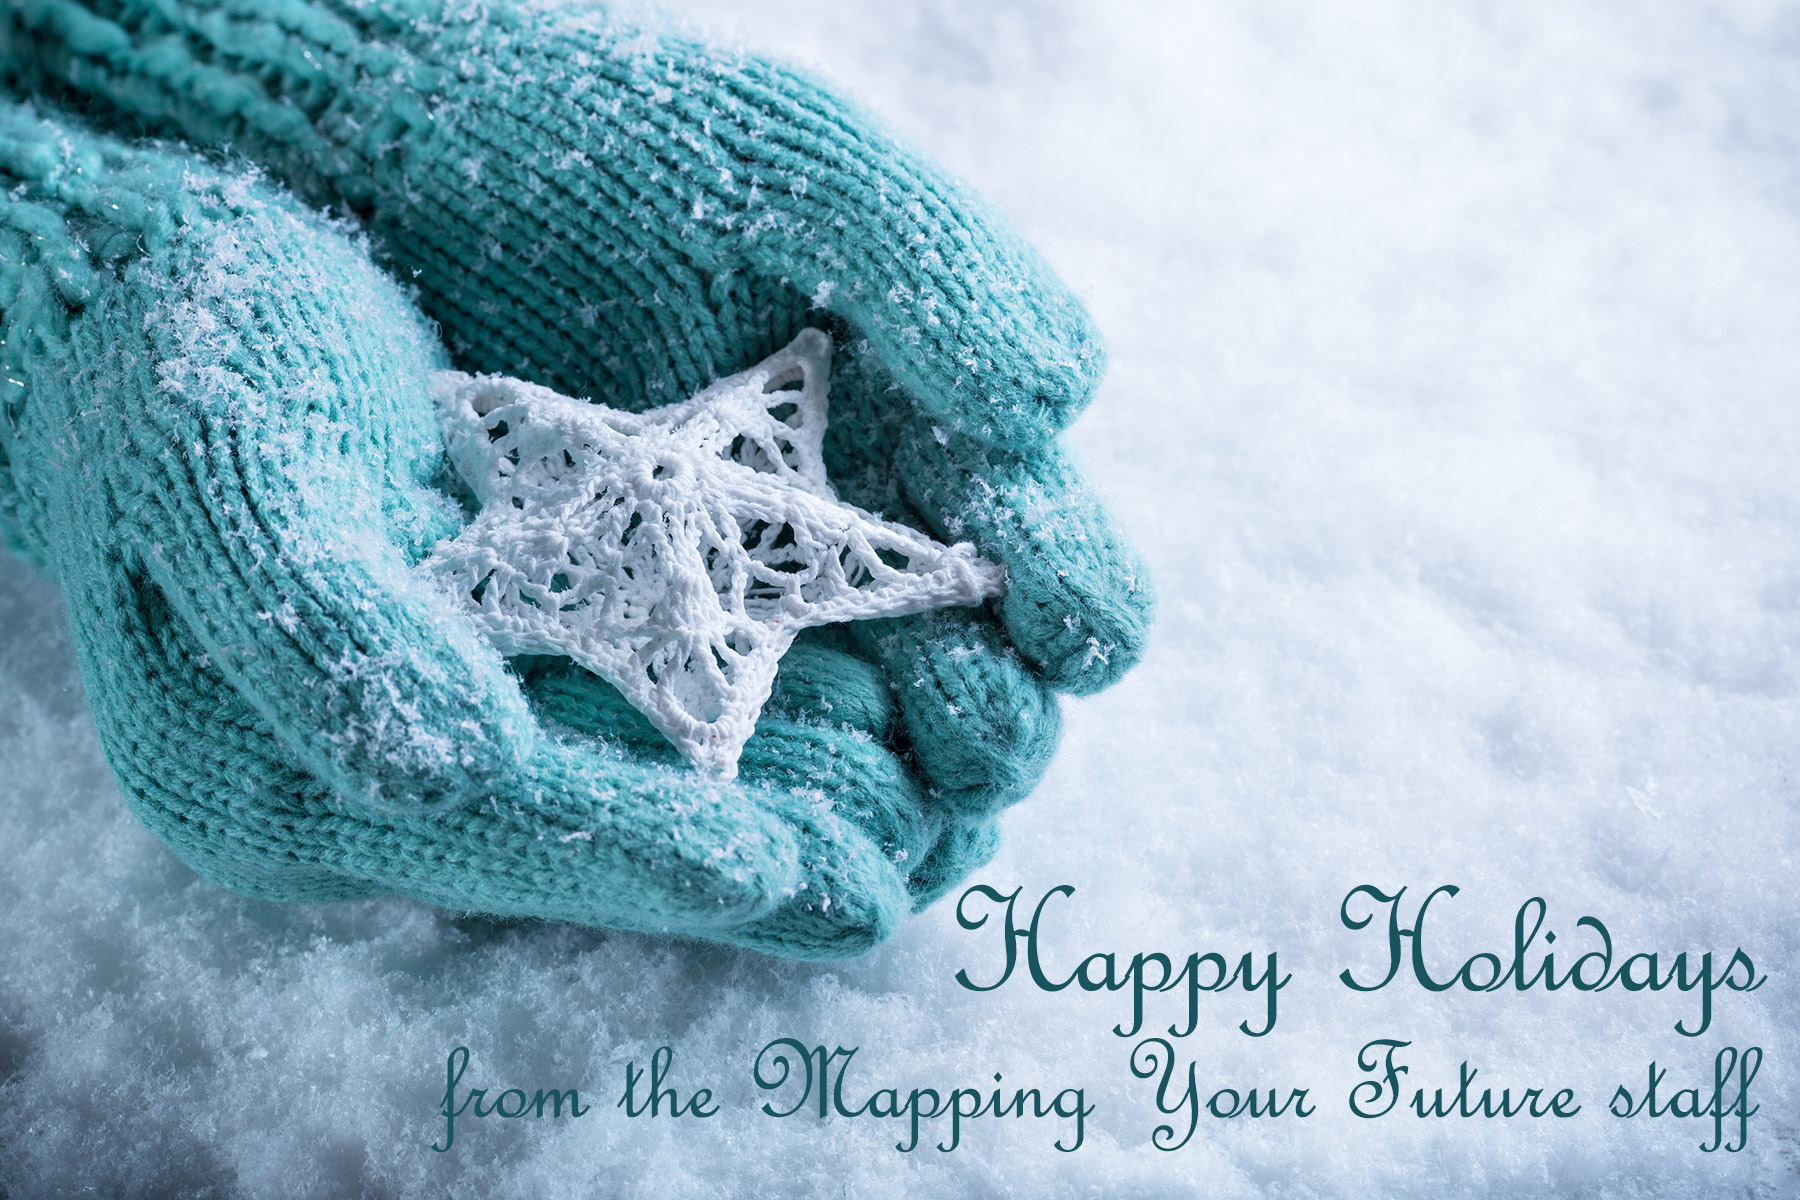 Happy holidays from Mapping Your Future